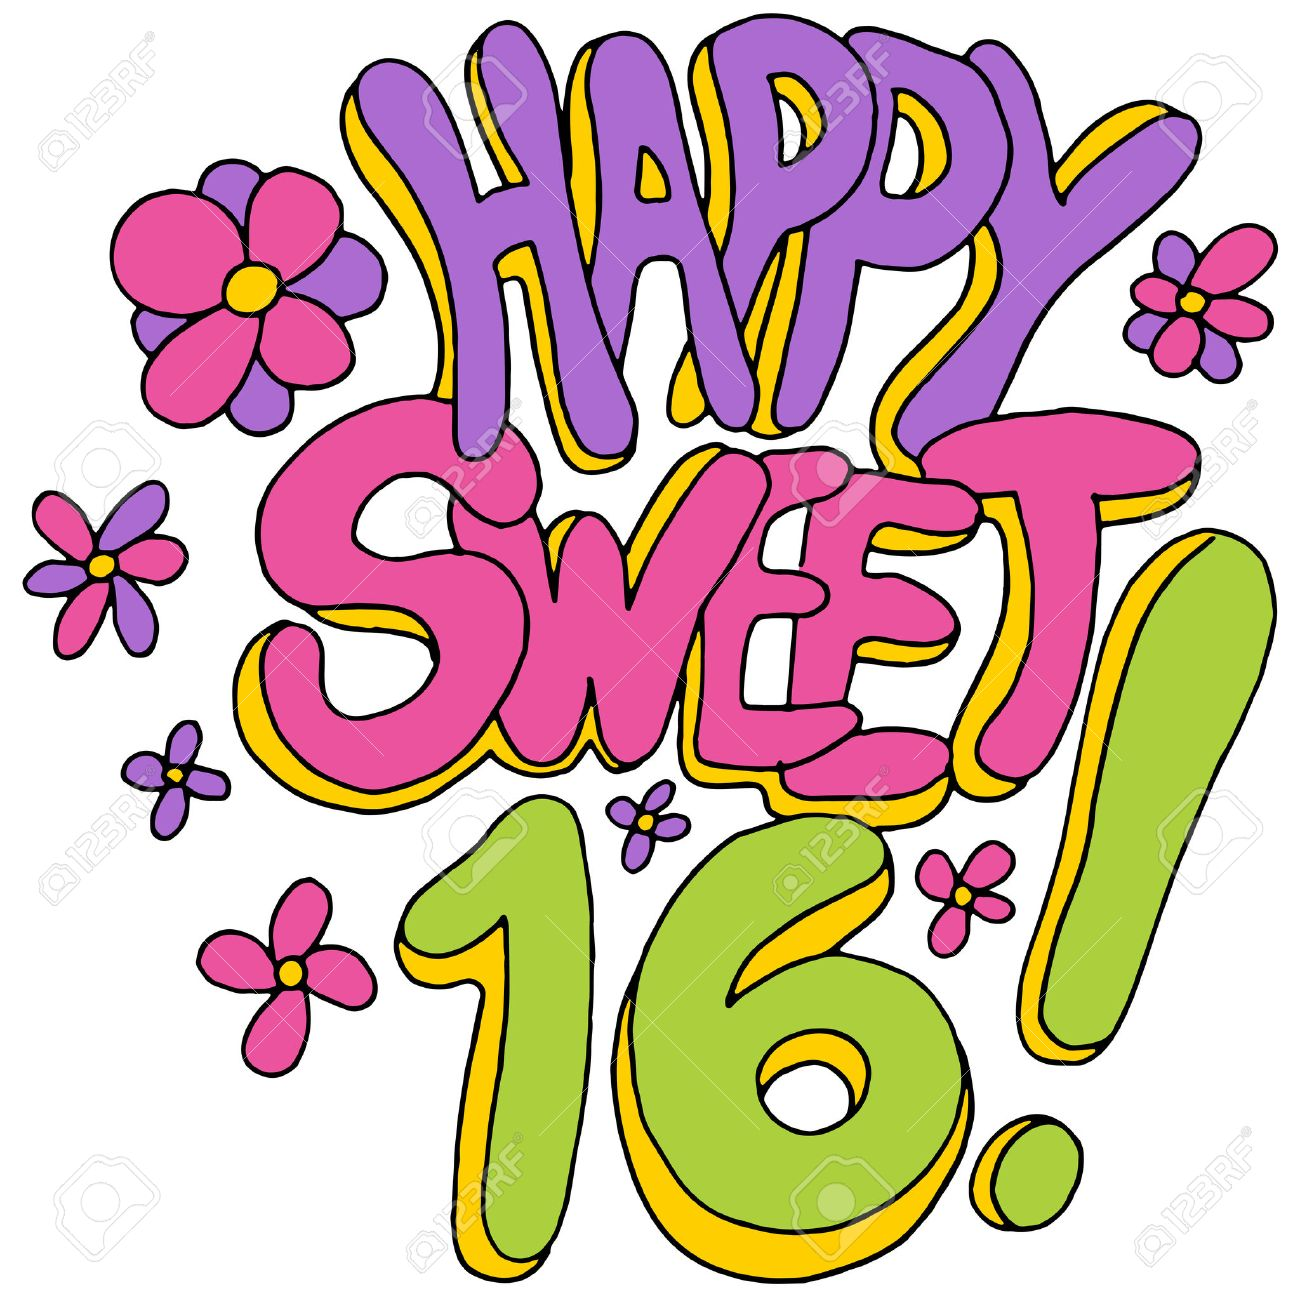 an image of a happy sweet sixteen message royalty free cliparts rh 123rf com sweet 16 clipart sweet sixteen clipart